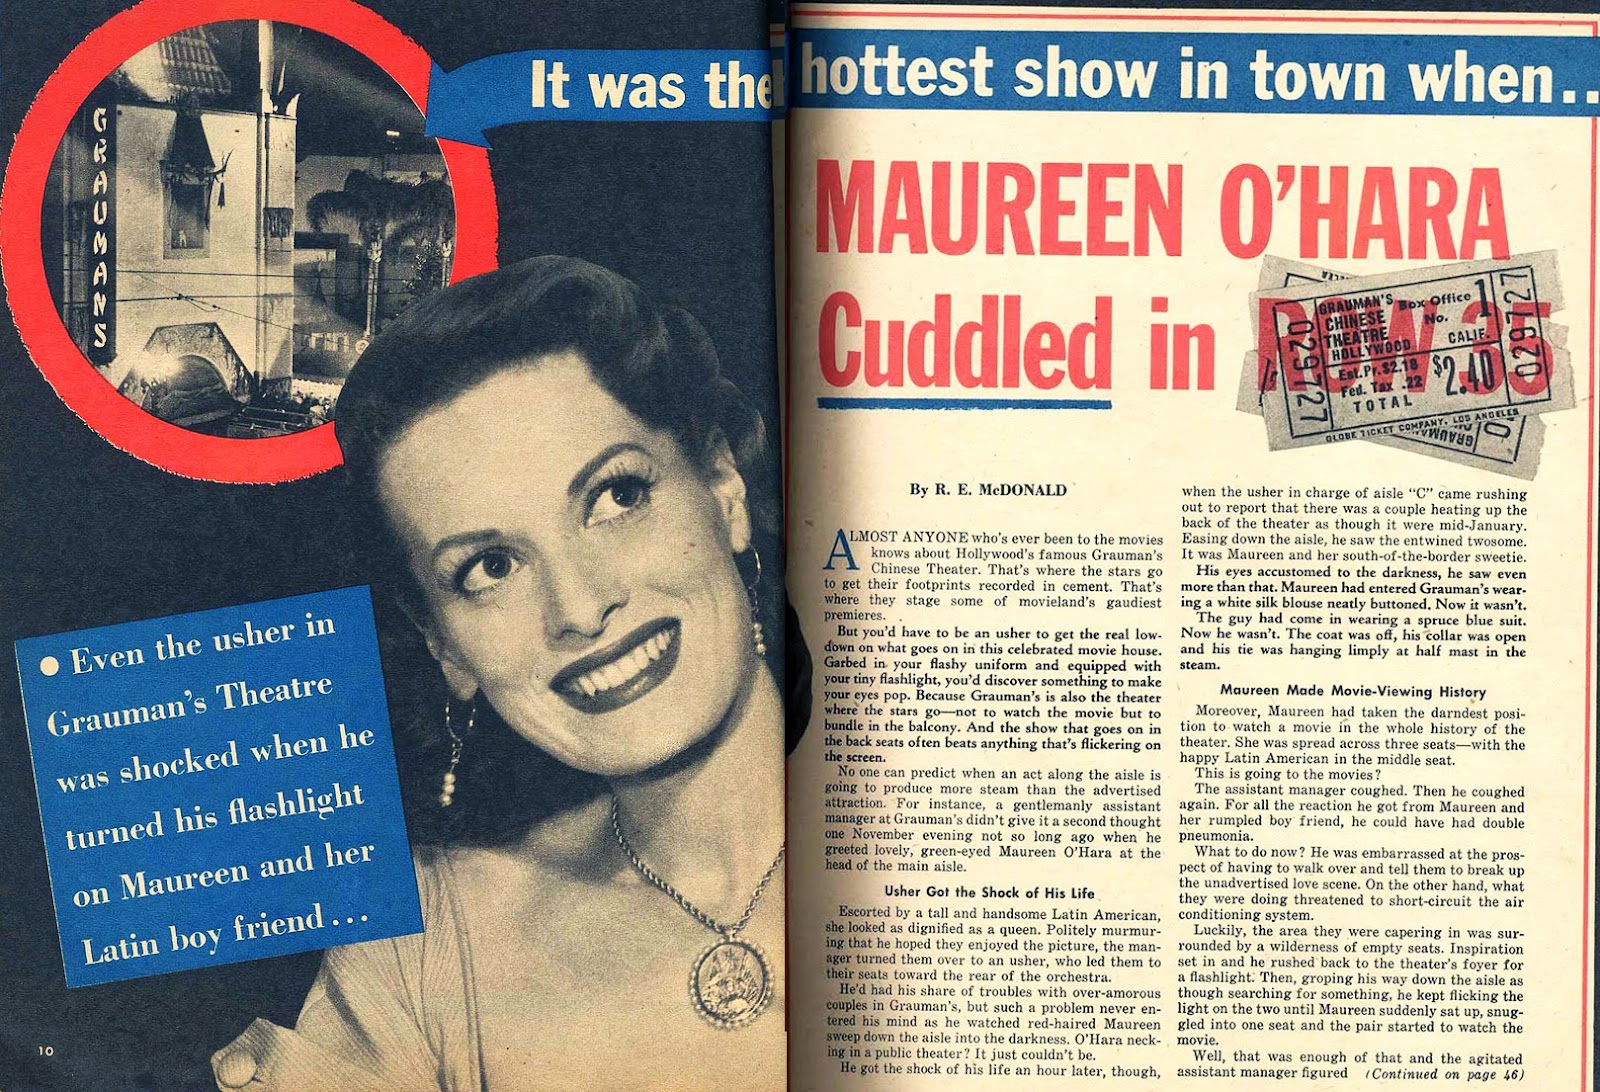 Maureen O'Hara in Confidential Magazine, March 1957